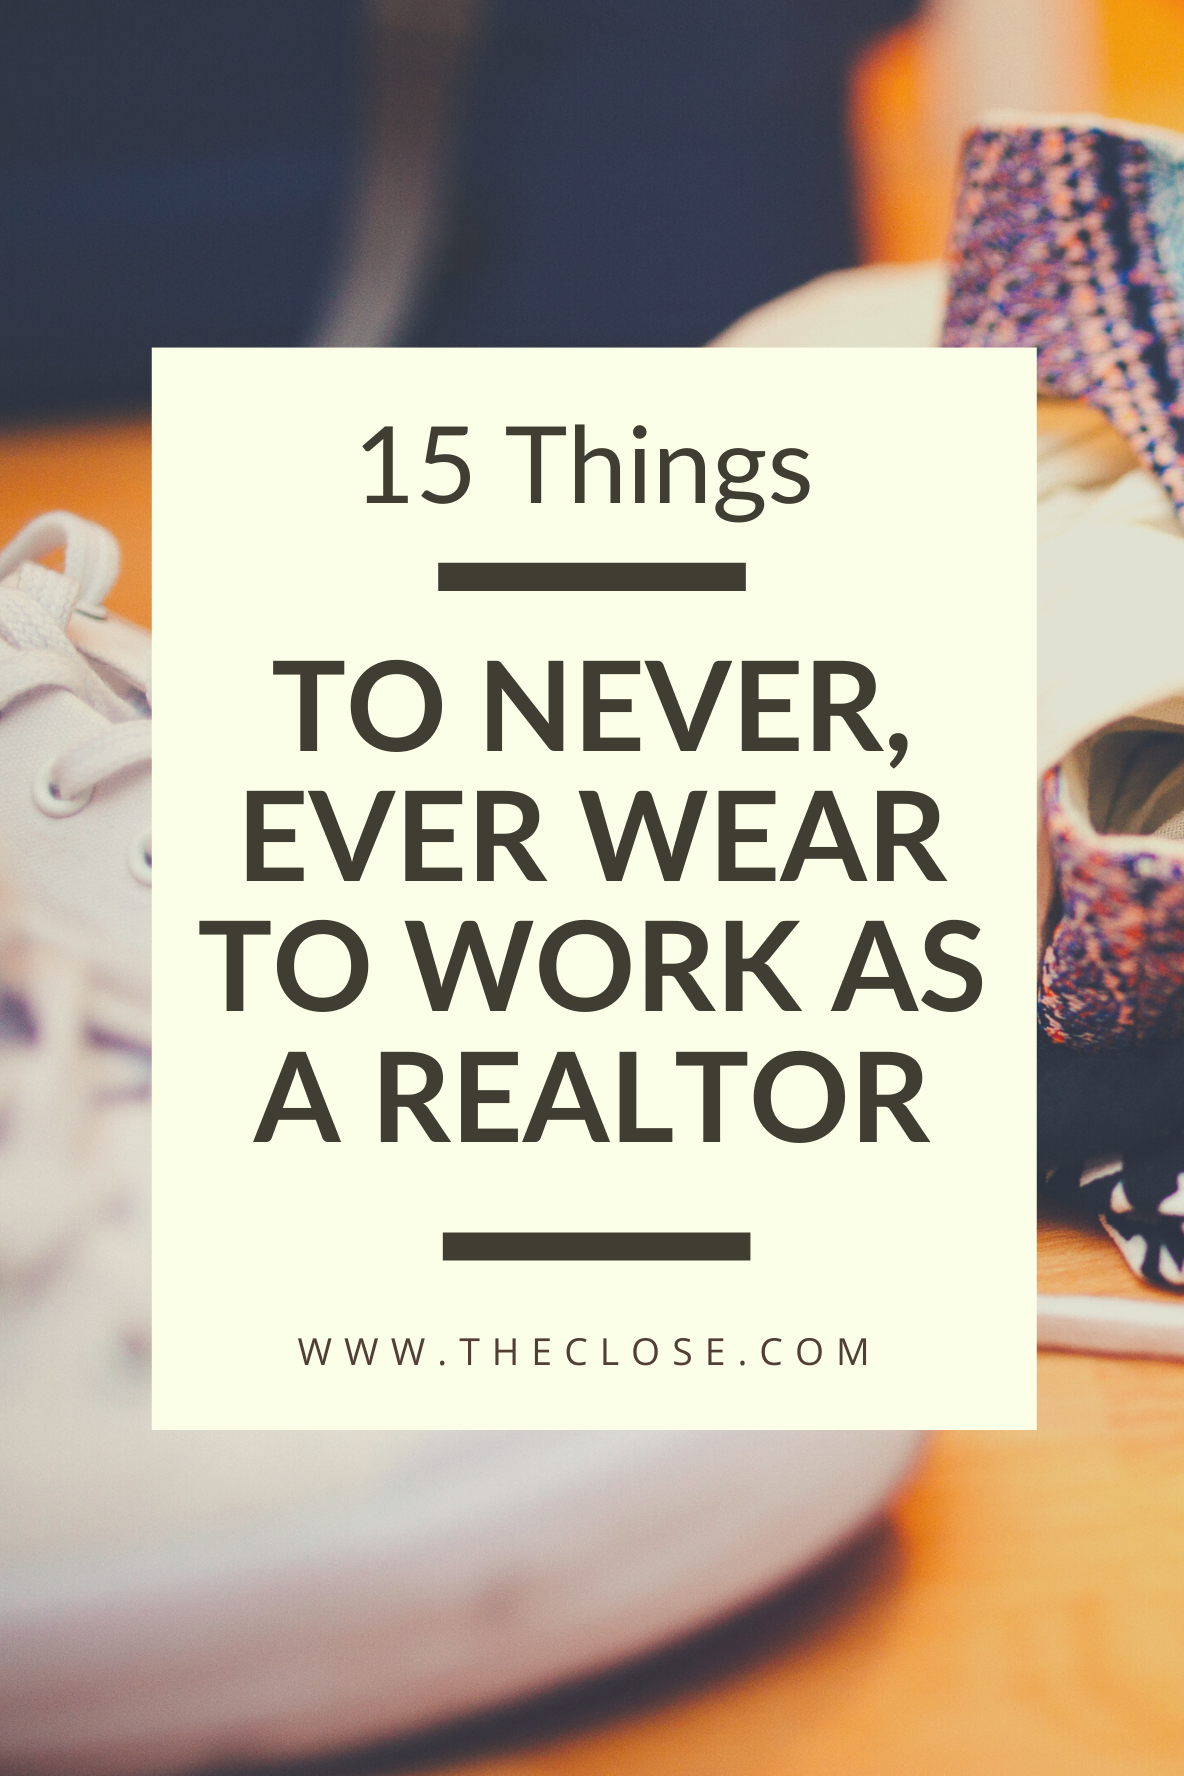 15 Things to Never, Ever Wear to Work as a Realtor